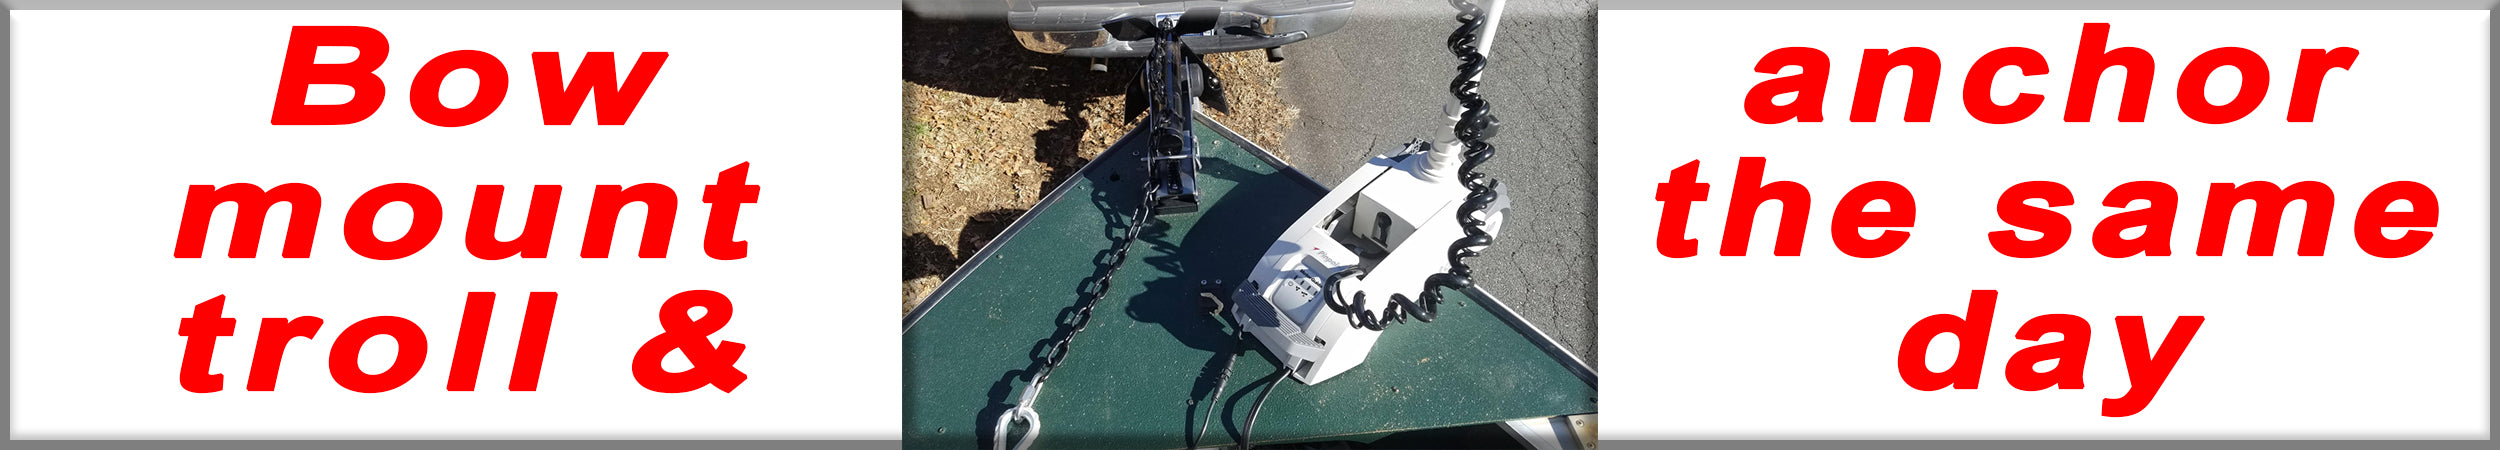 Anchoring with bow mount trolling motor